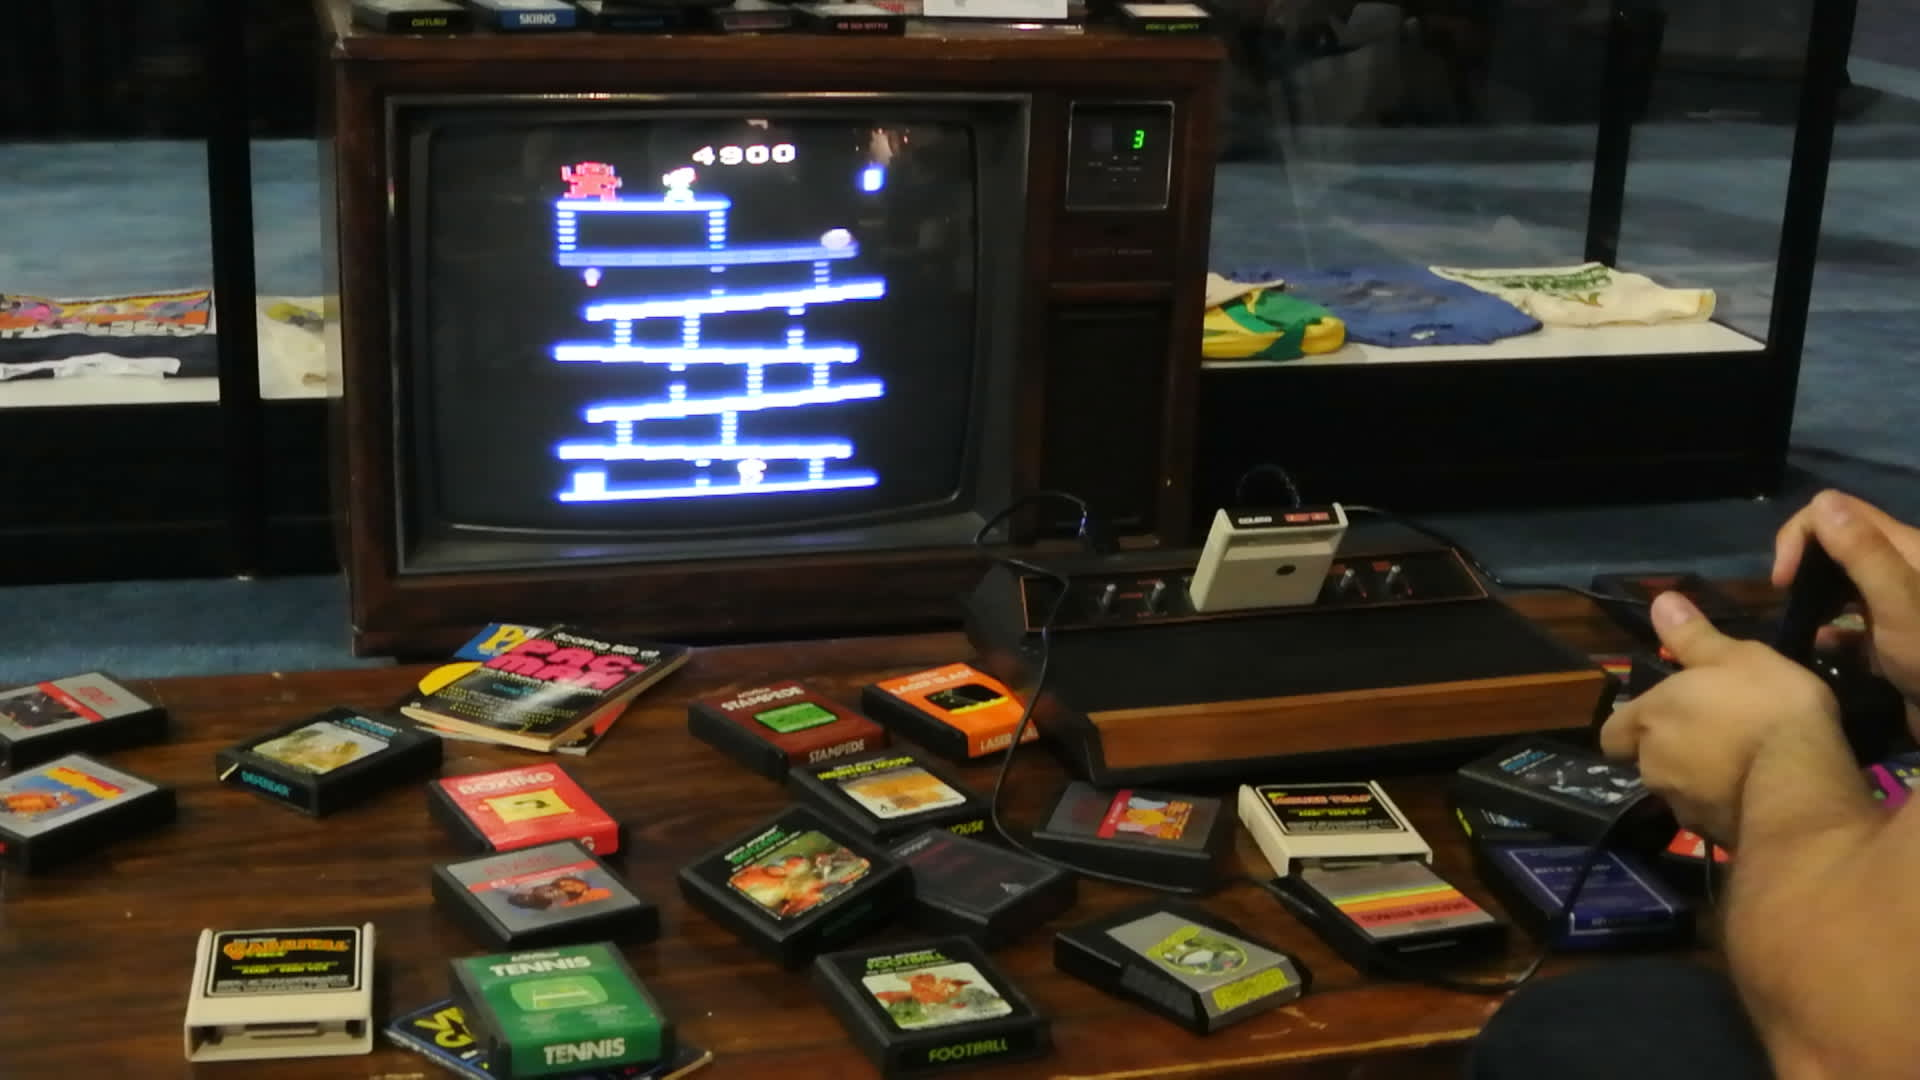 vintage Atari cartridges and console on display at the 2014 E3 Electronic Entertainment Expo.